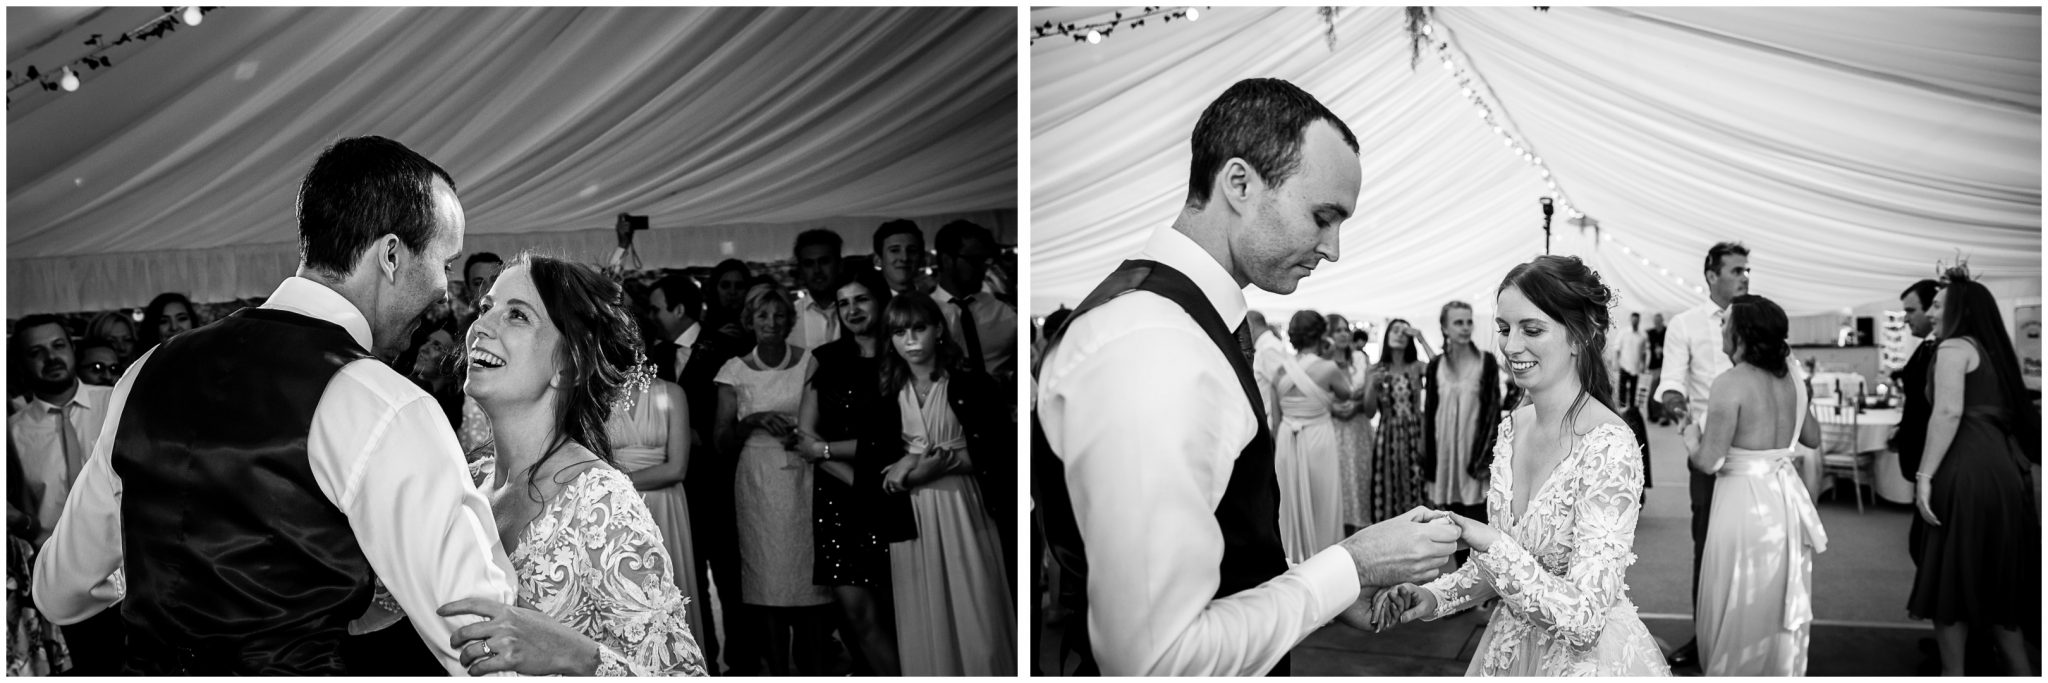 Black and white photos as couple kick off the evening party